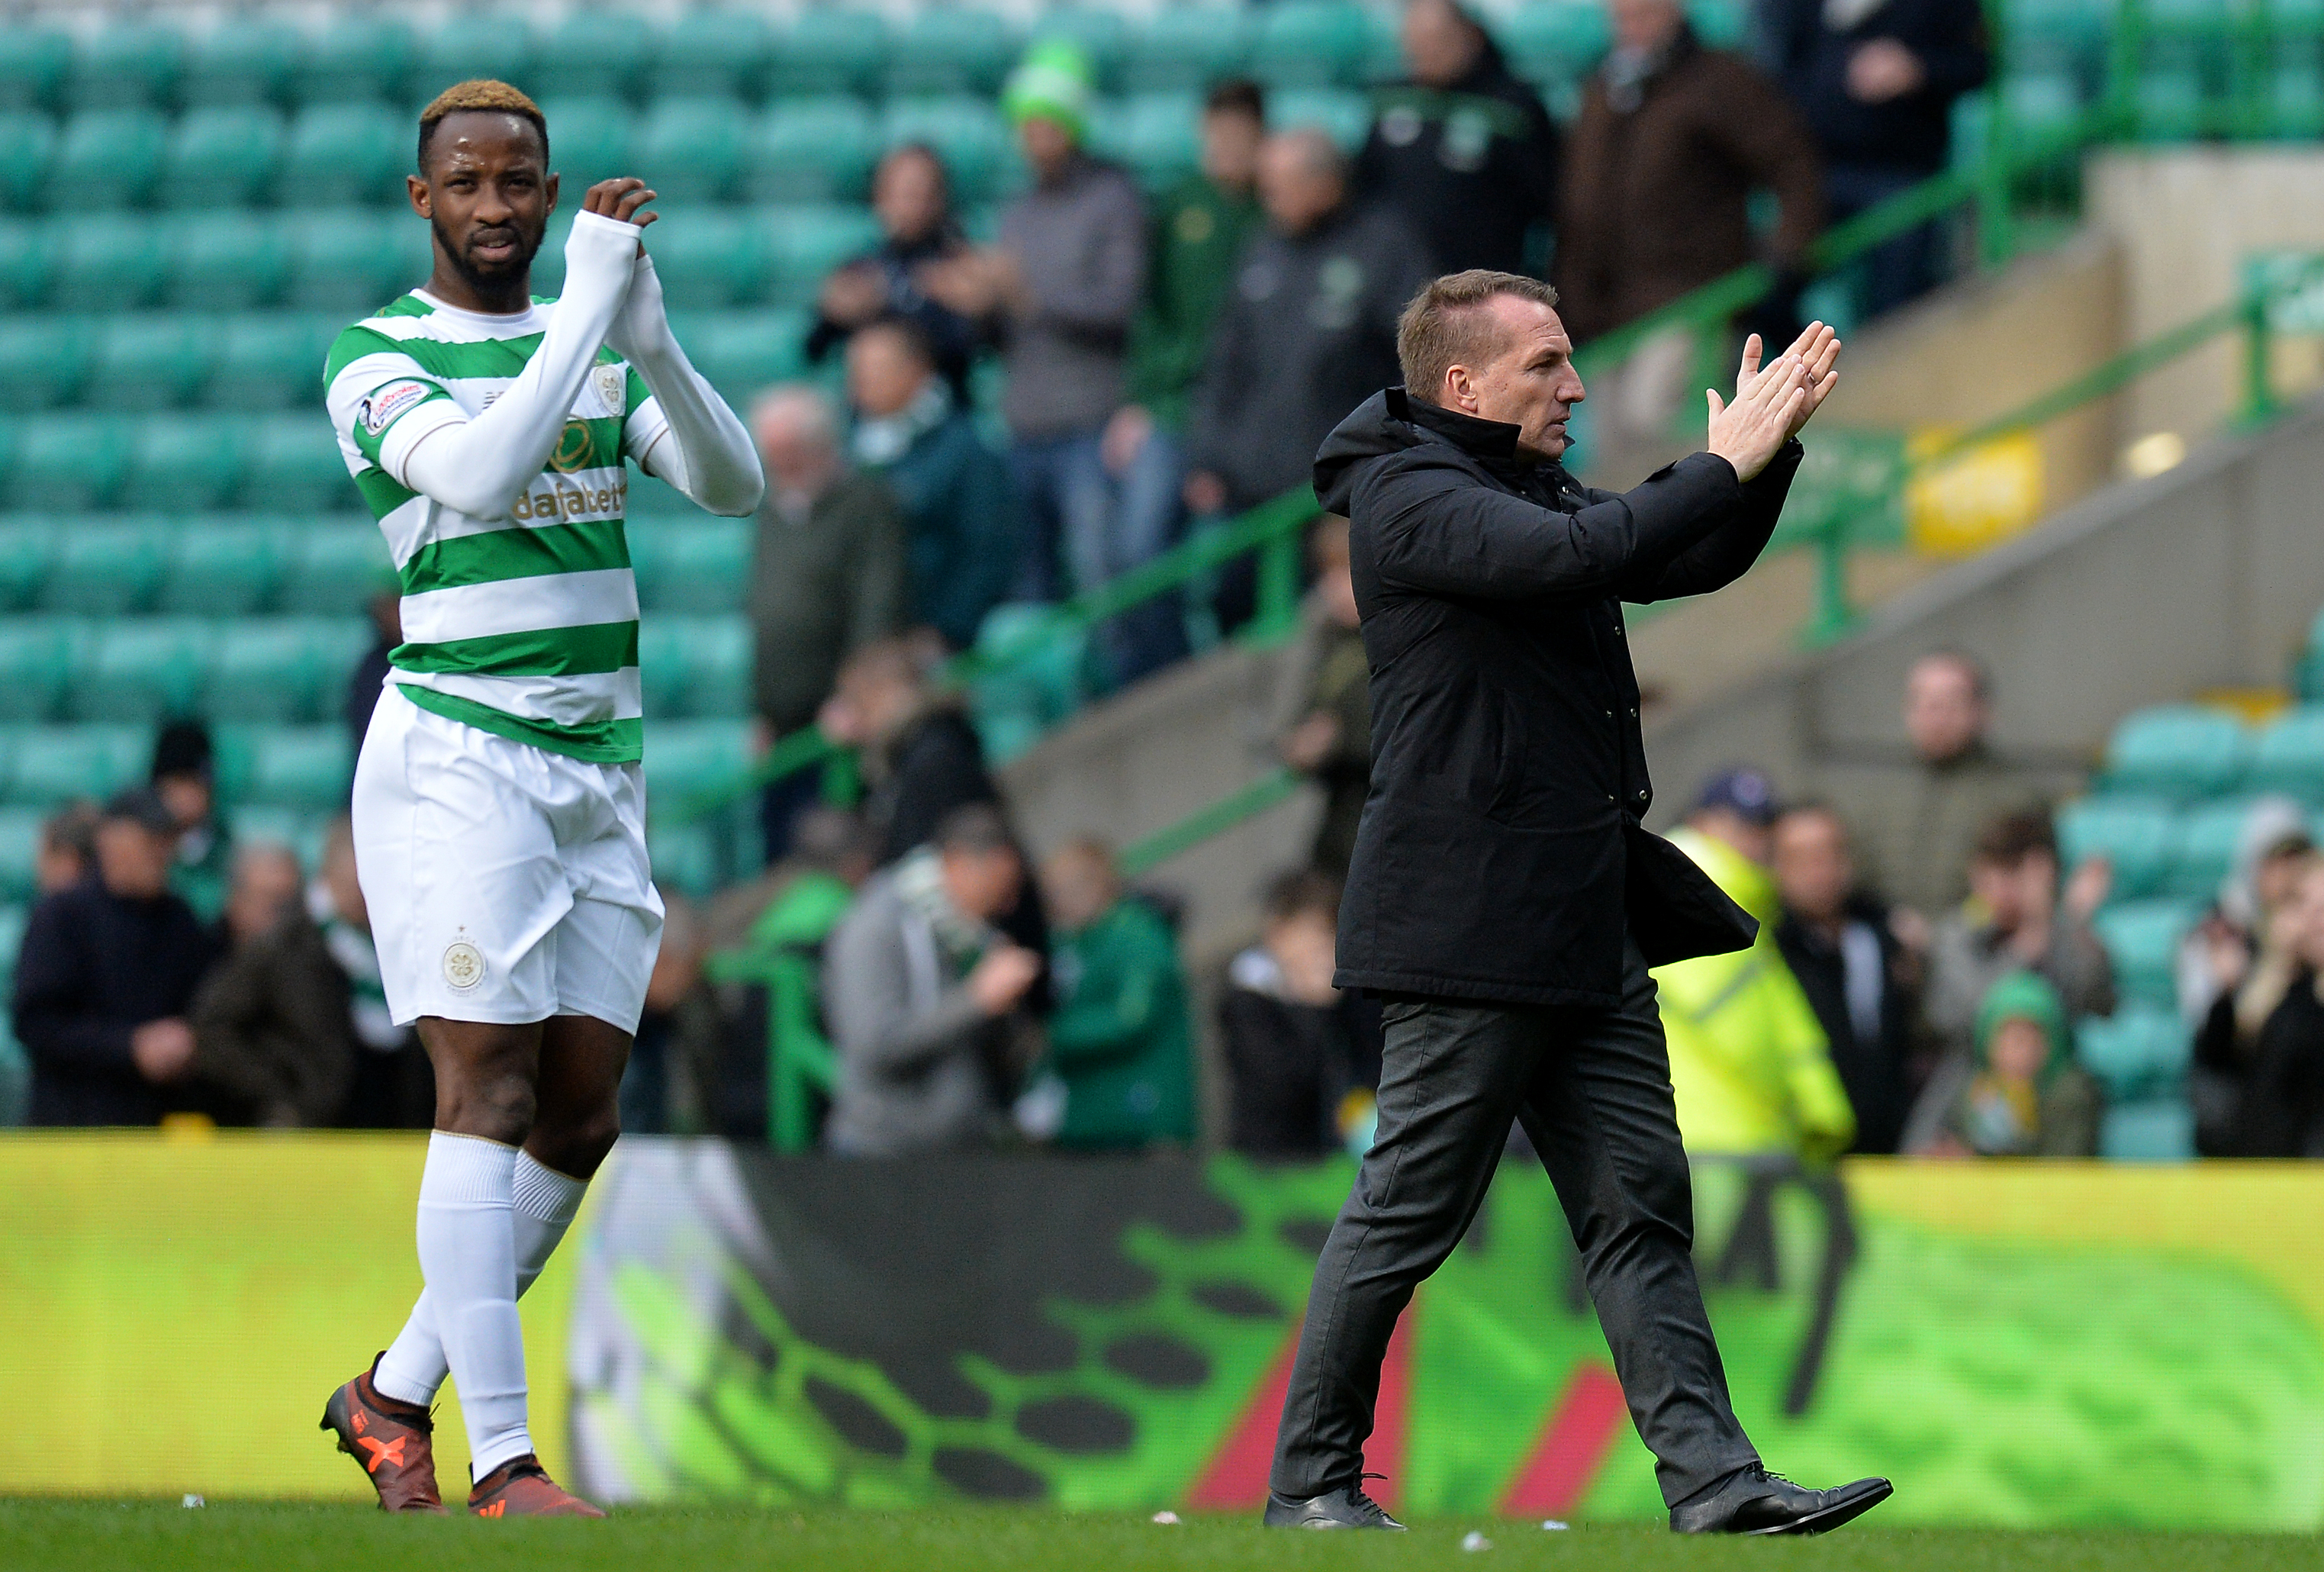 1a543c769 After the deal between Celtic and Lyon was agreed, the striker posted an  emotive goodbye message to Celtic fans on Twitter. From the way he speaks  about the ...